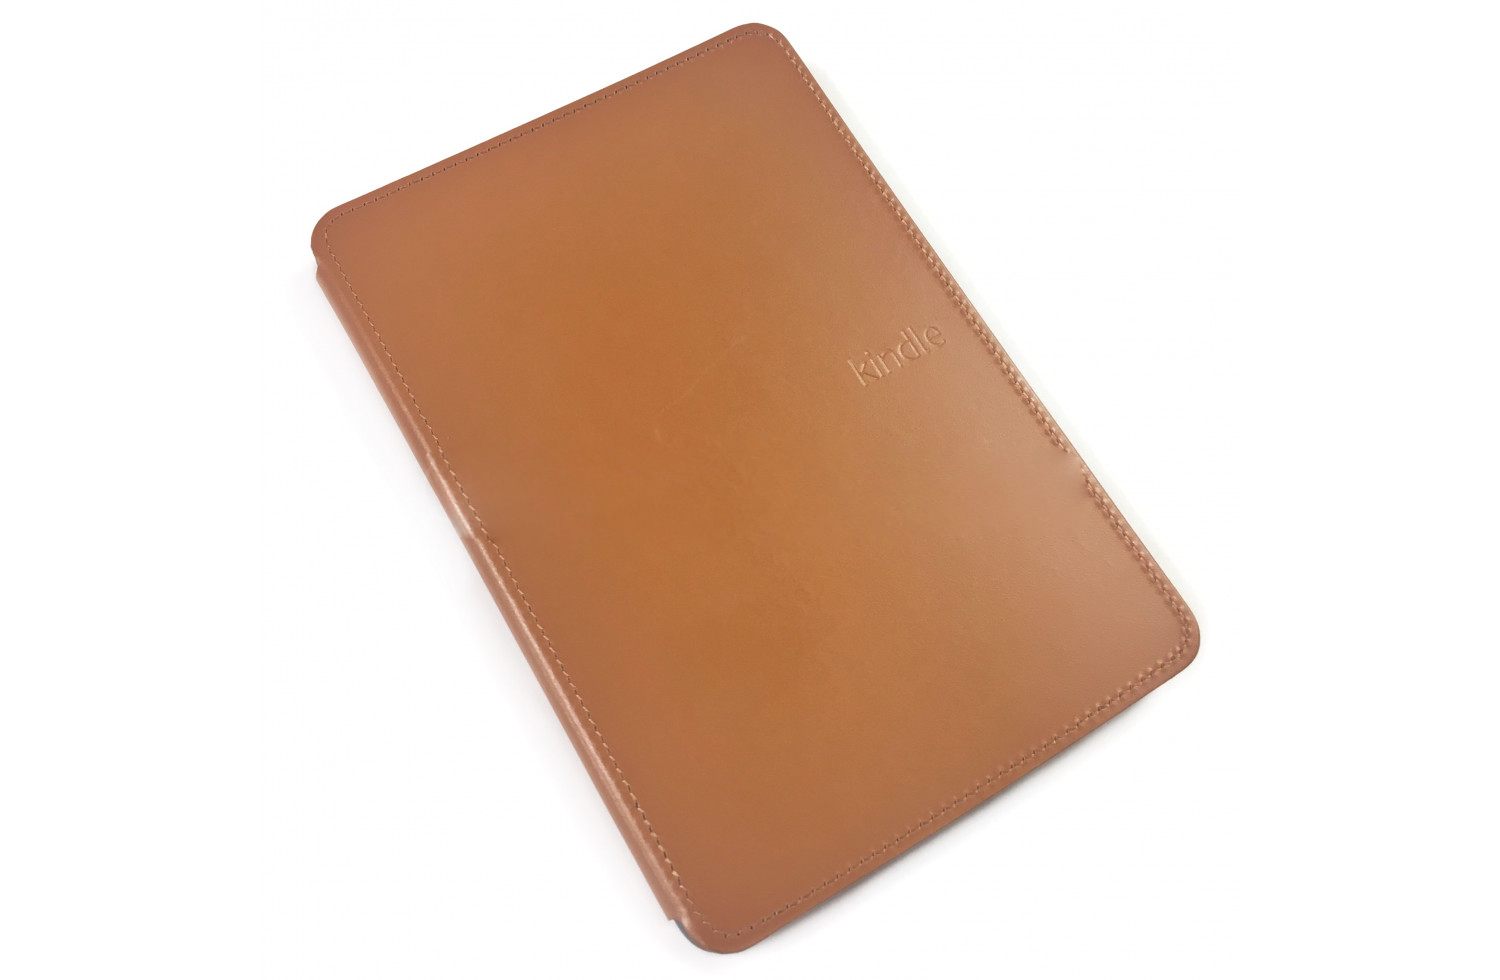 Чехол Amazon Kindle Lighted Leather Cover Saddle Tan чехол amazon kindle leather cover oliver green